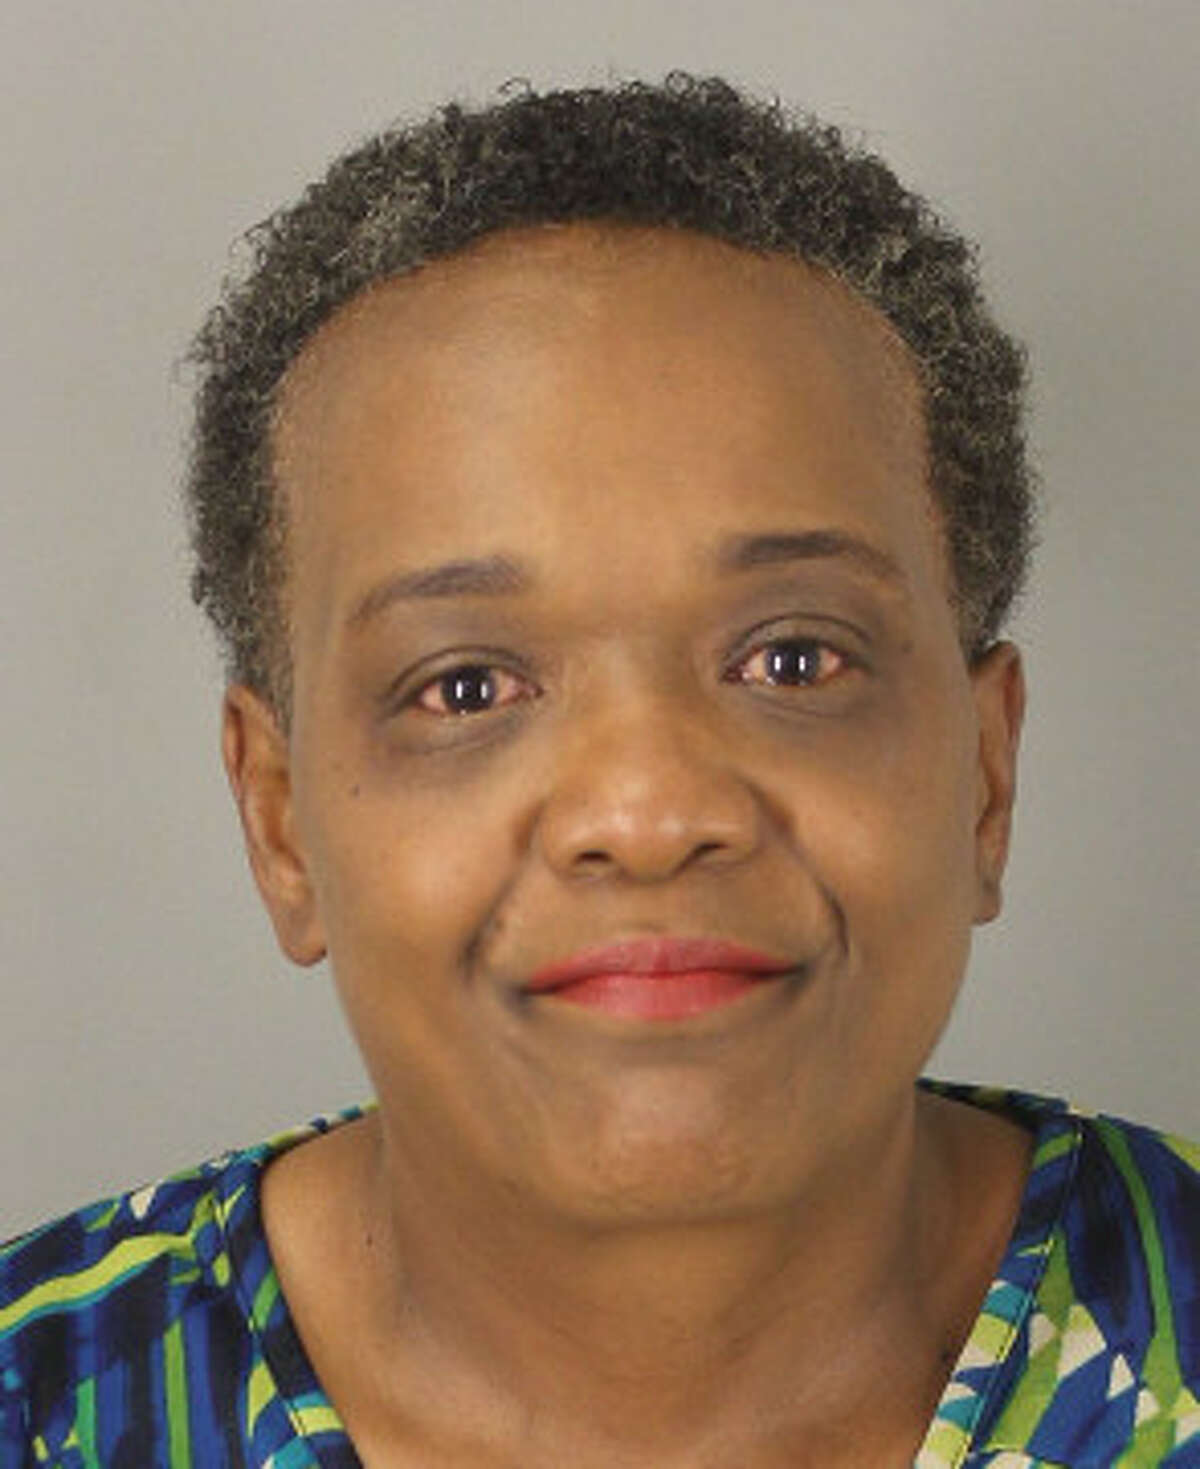 Debra Ambroise, 55,was terminated in July from her position in the Port Arthur Transit Department after she was arrested on felony charges of theft by a public servant and tampering with a government record.